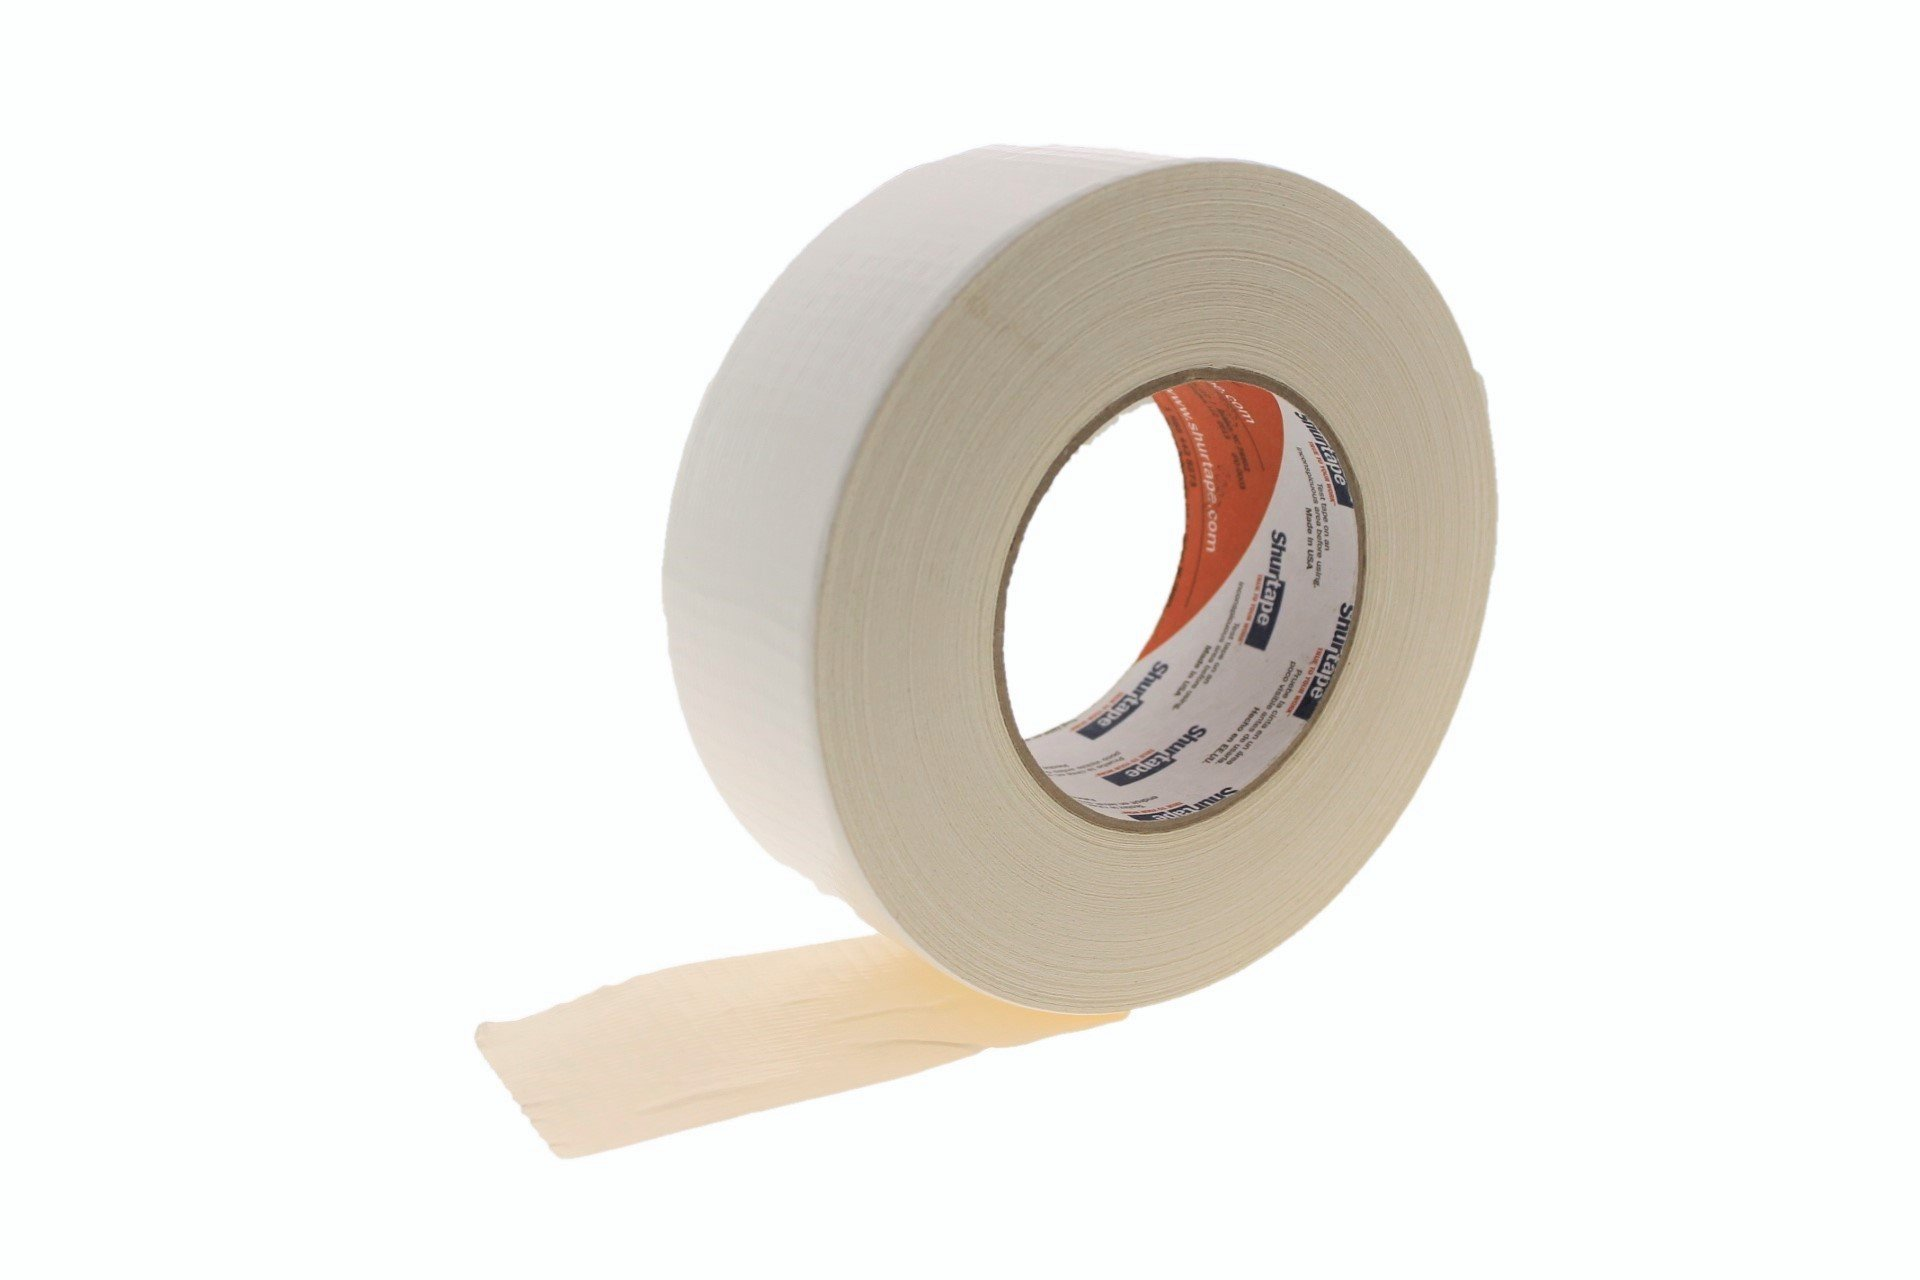 PC-600 Shurtape 2'' White 9 Mil Cloth Duct Tape Waterproof Hand Tearable UV Resistant High Visibility Industrial Grade Heavy Duty Pro Colored Duct Tape Colors USA Made 60yd by Shurtape